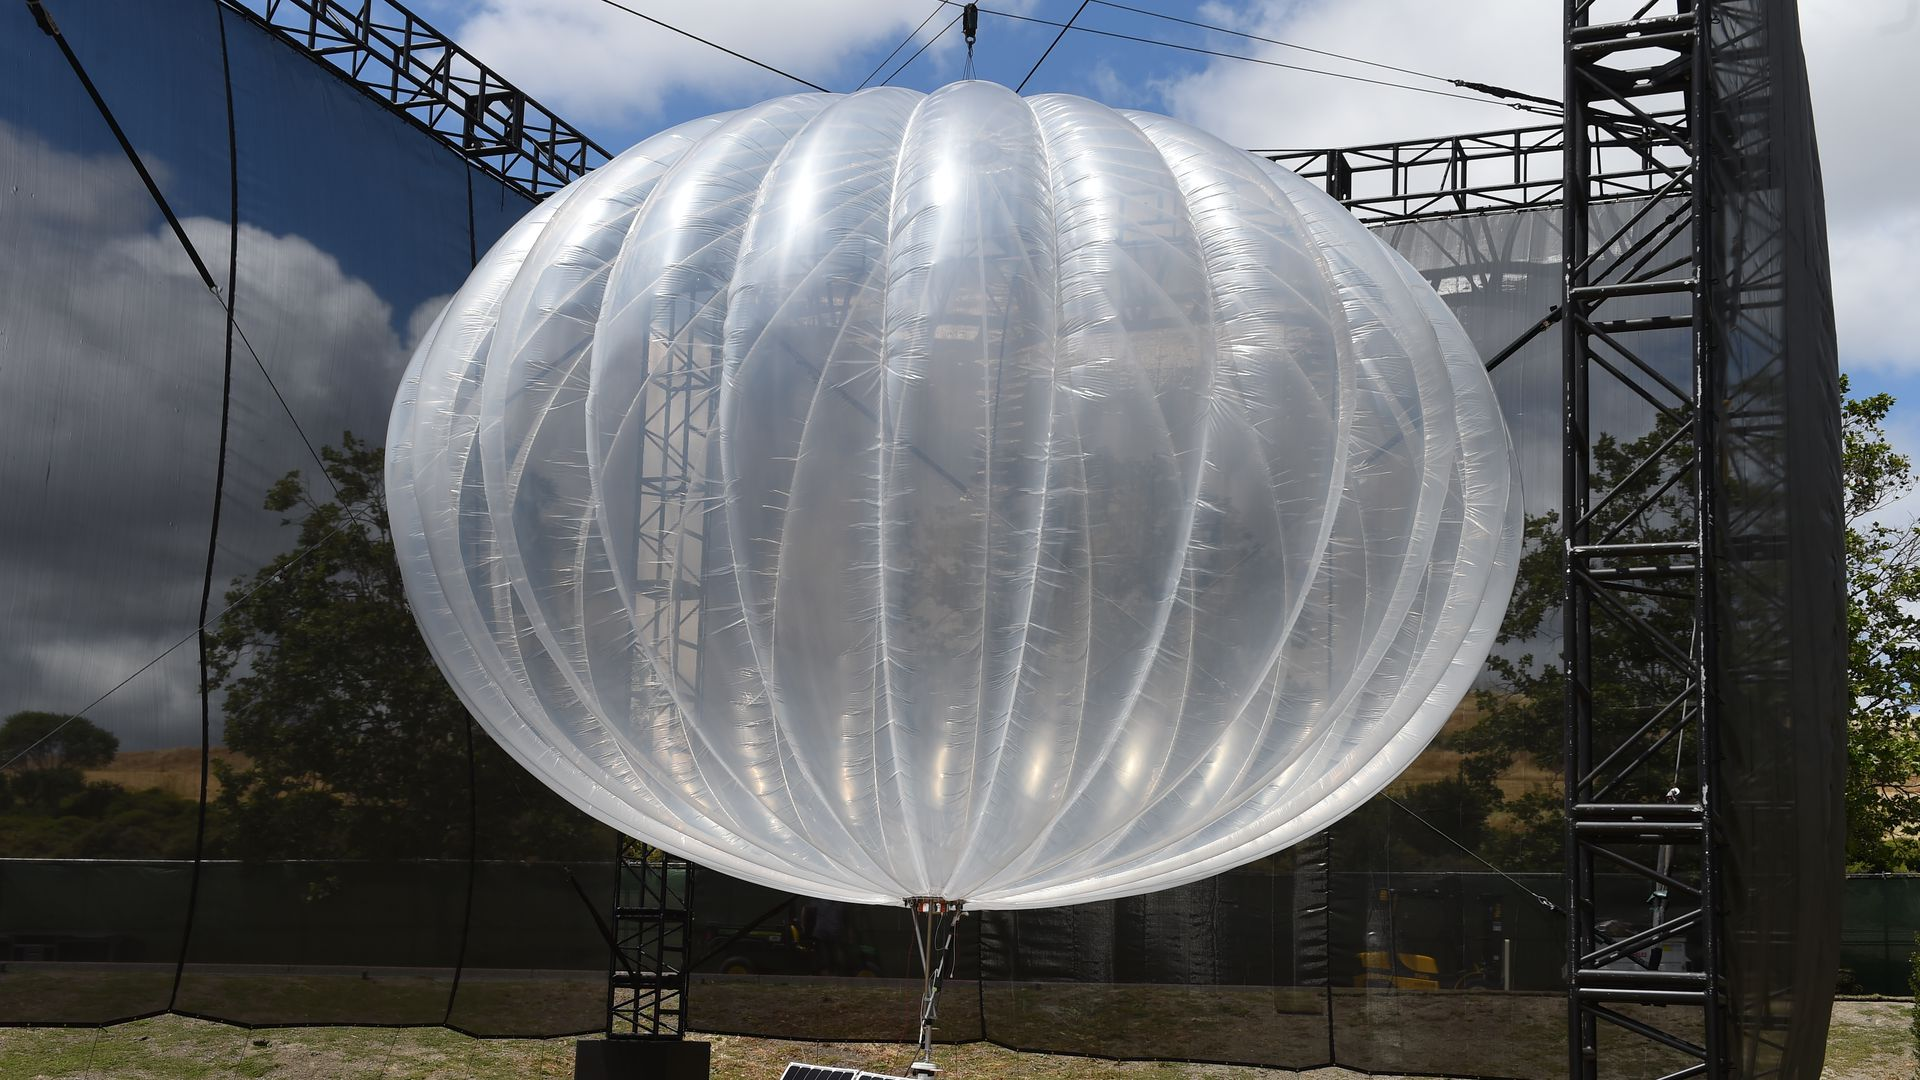 This image shows a large clear balloon from the Loon project.